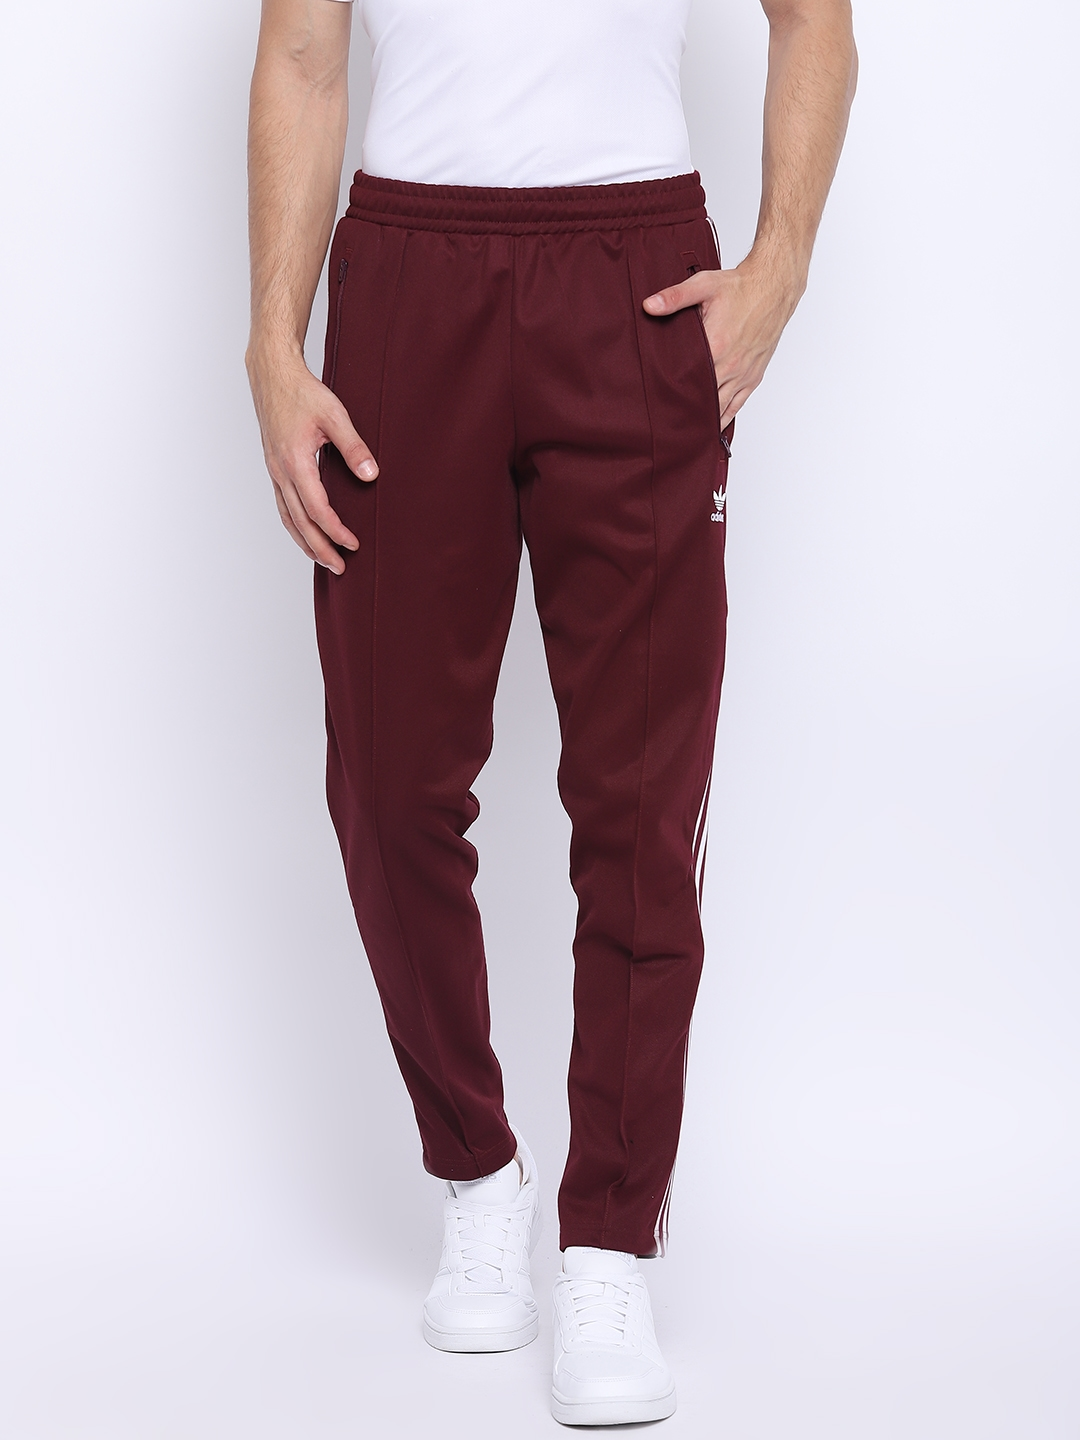 Buy ADIDAS Originals Men Maroon Beckenbauer Solid Track Pants ... 3785cc6b79